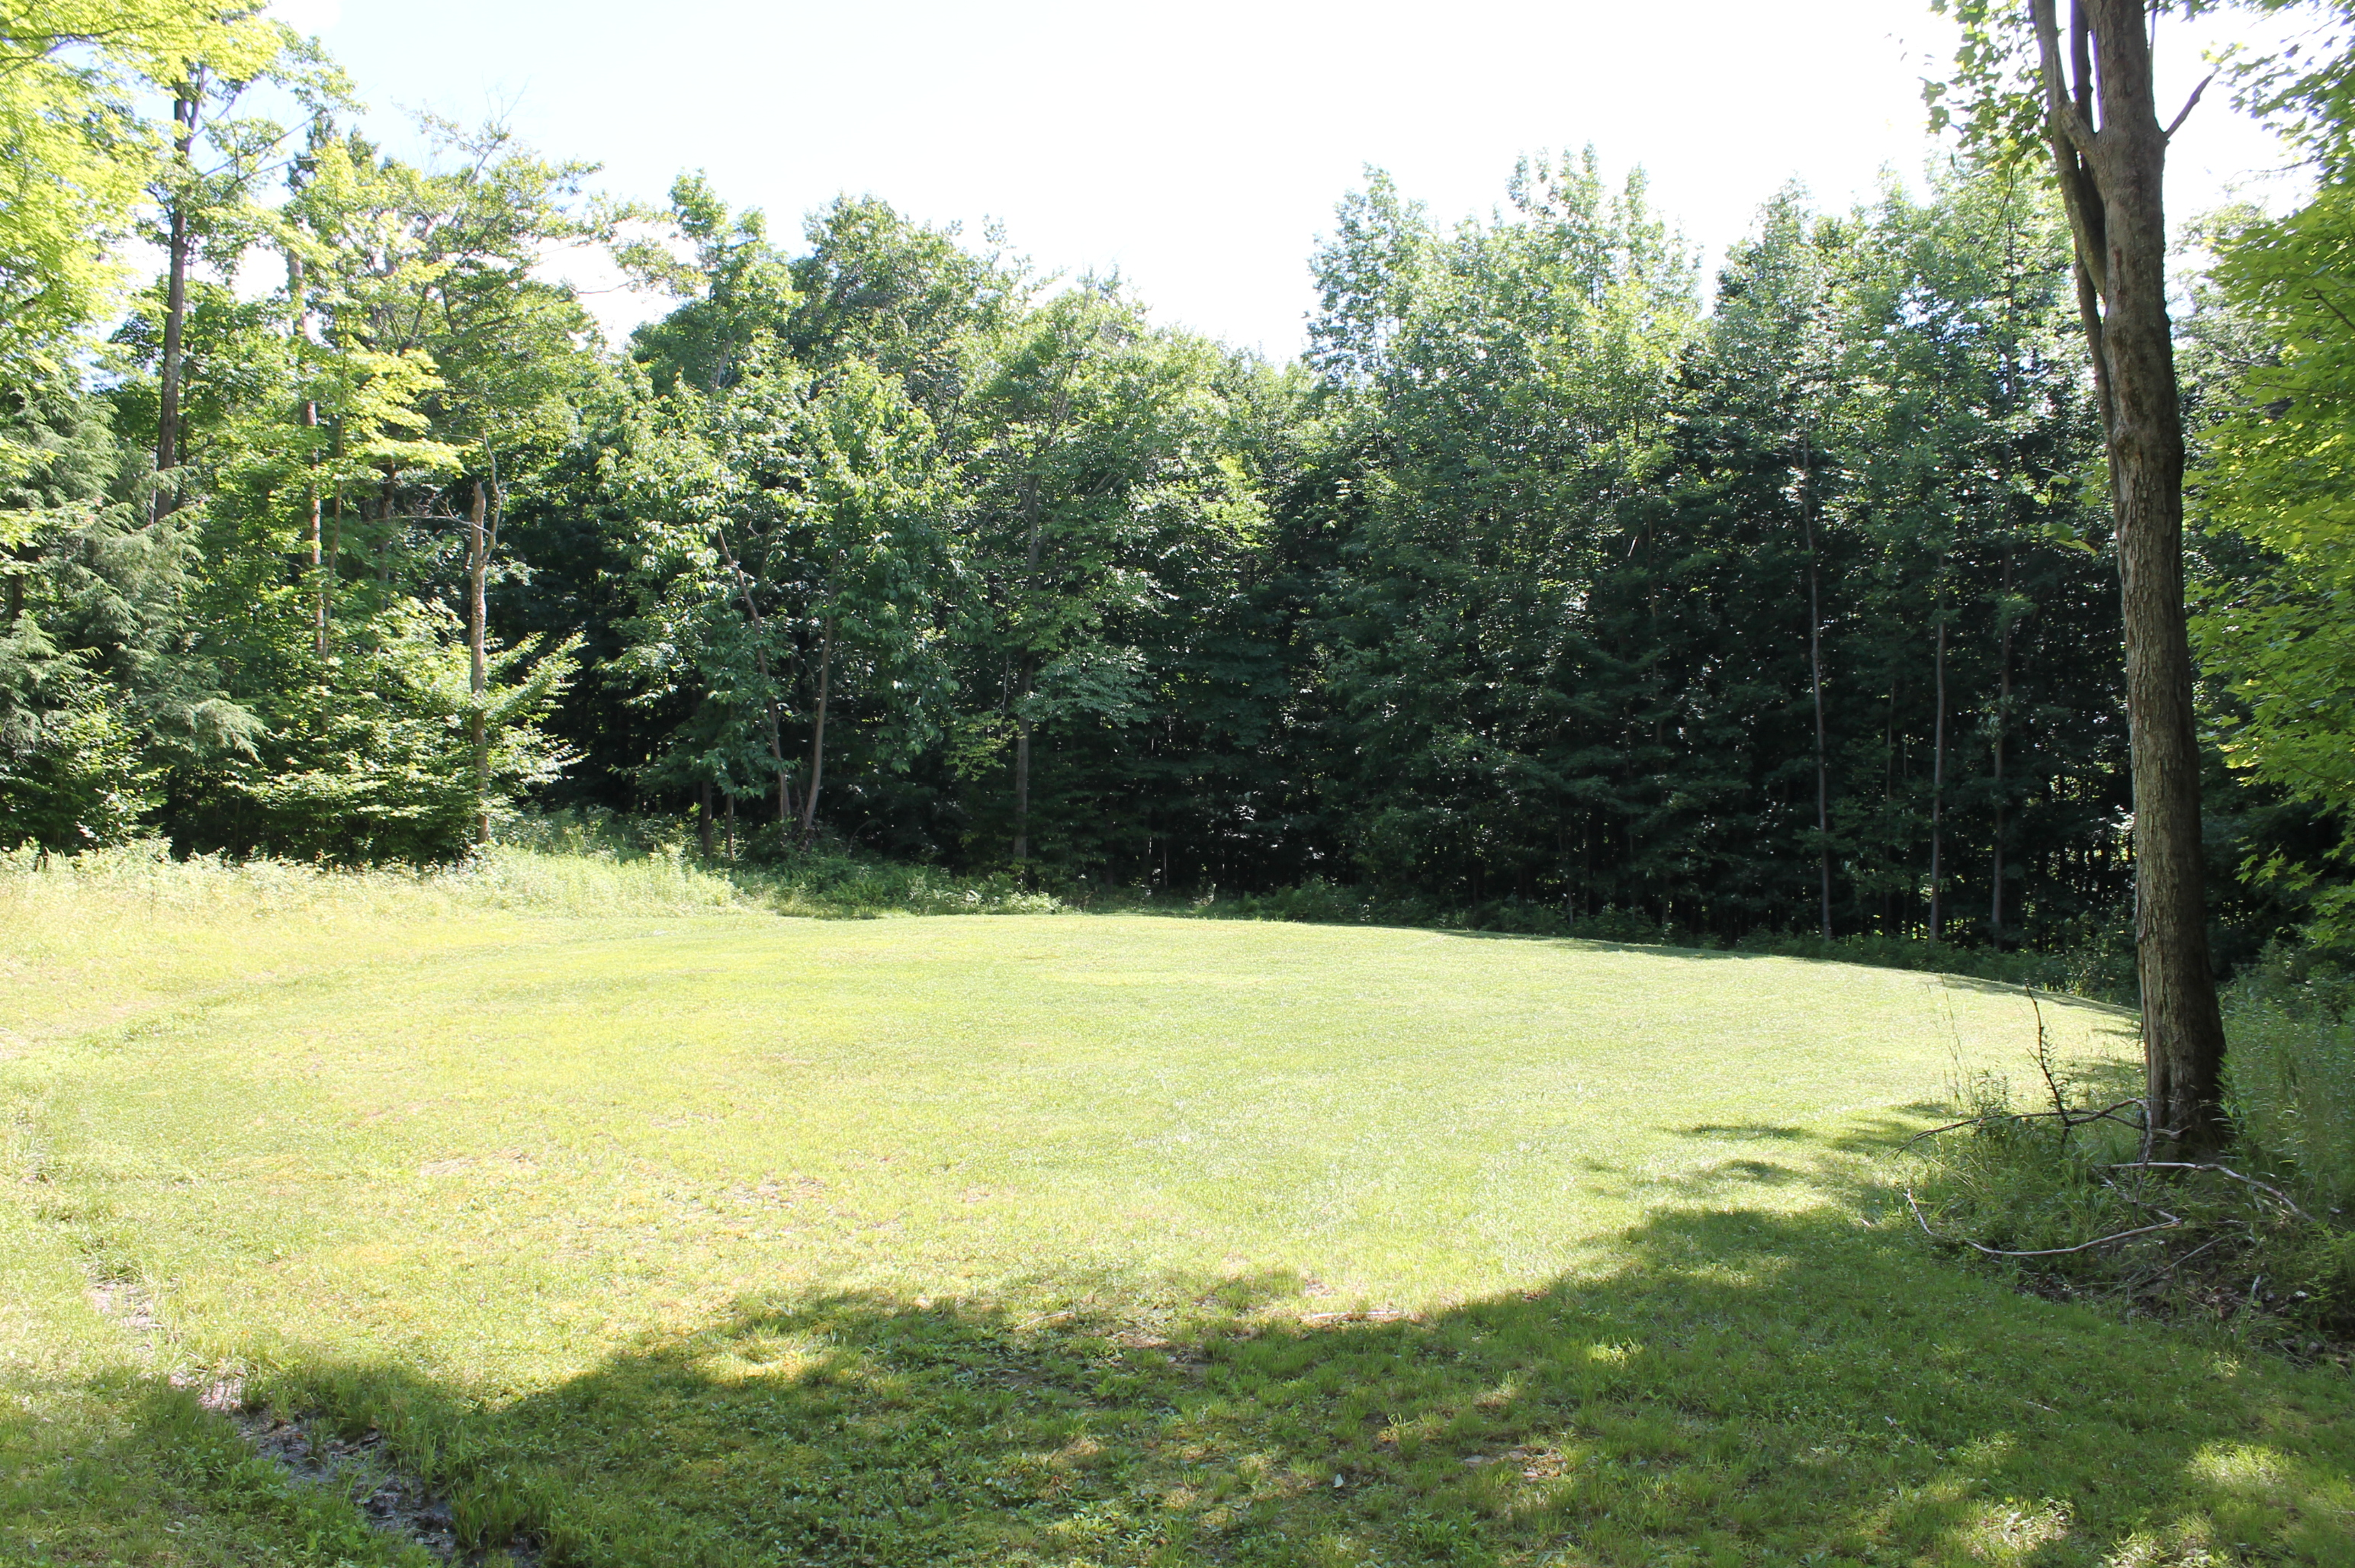 SOLD File #833 Parcel #9: Town of Allen/Allegany County